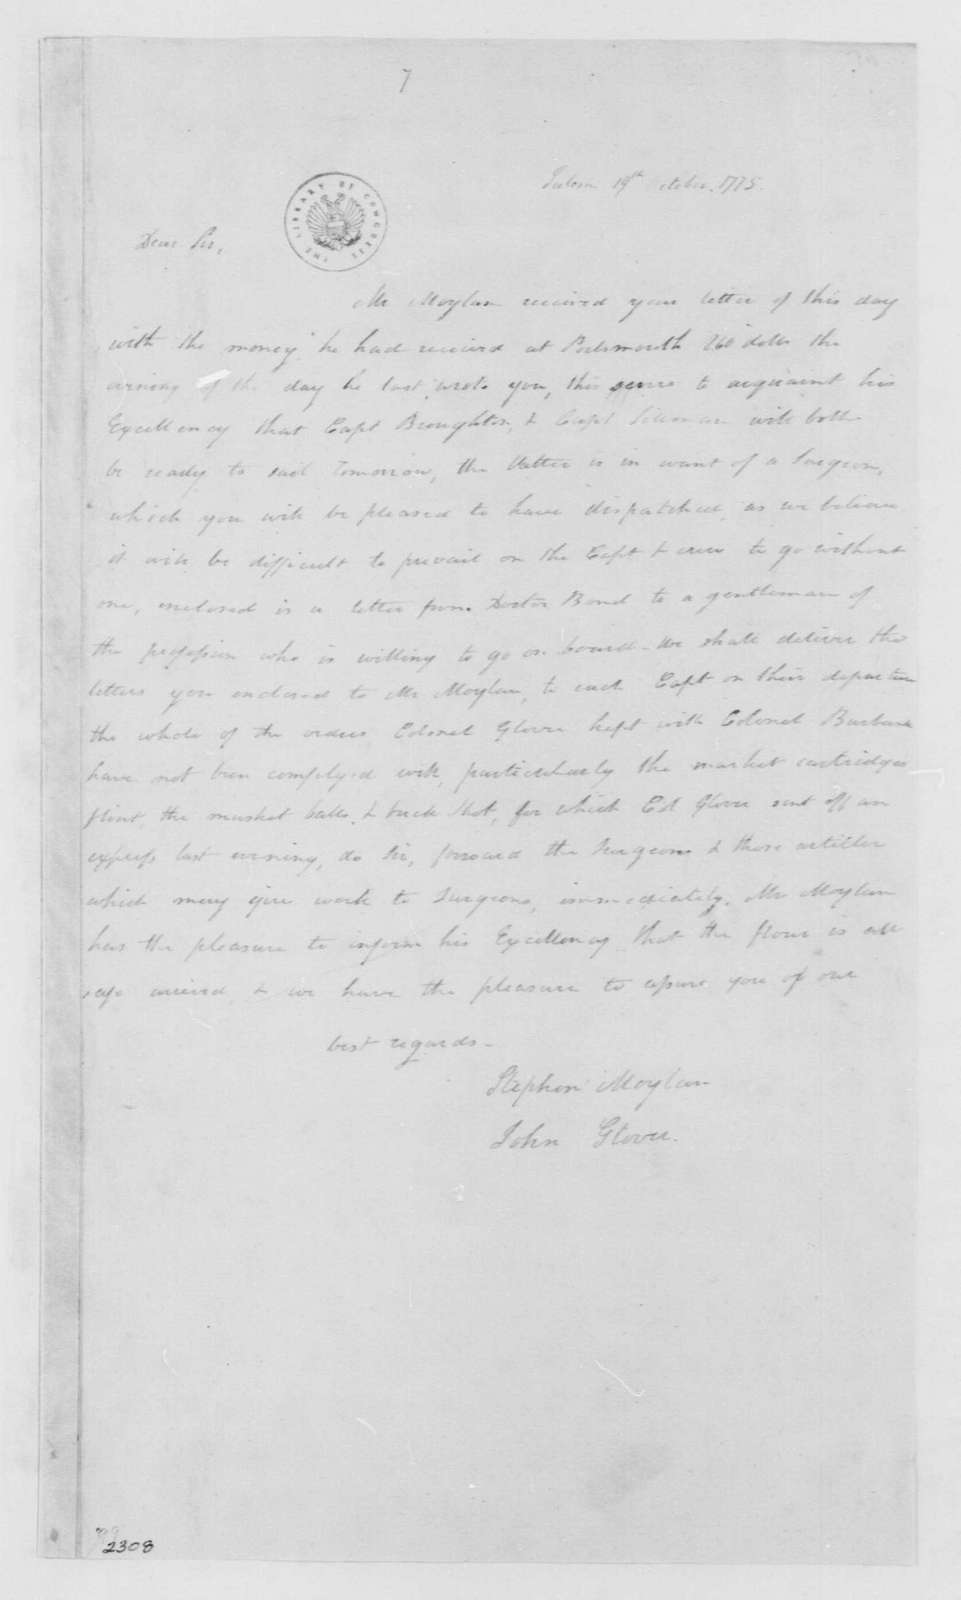 George Washington Papers, Series 4, General Correspondence: Stephen Glover and John Glover to George Washington, October 19, 1775, 19th-century transcription by William B. Sprague